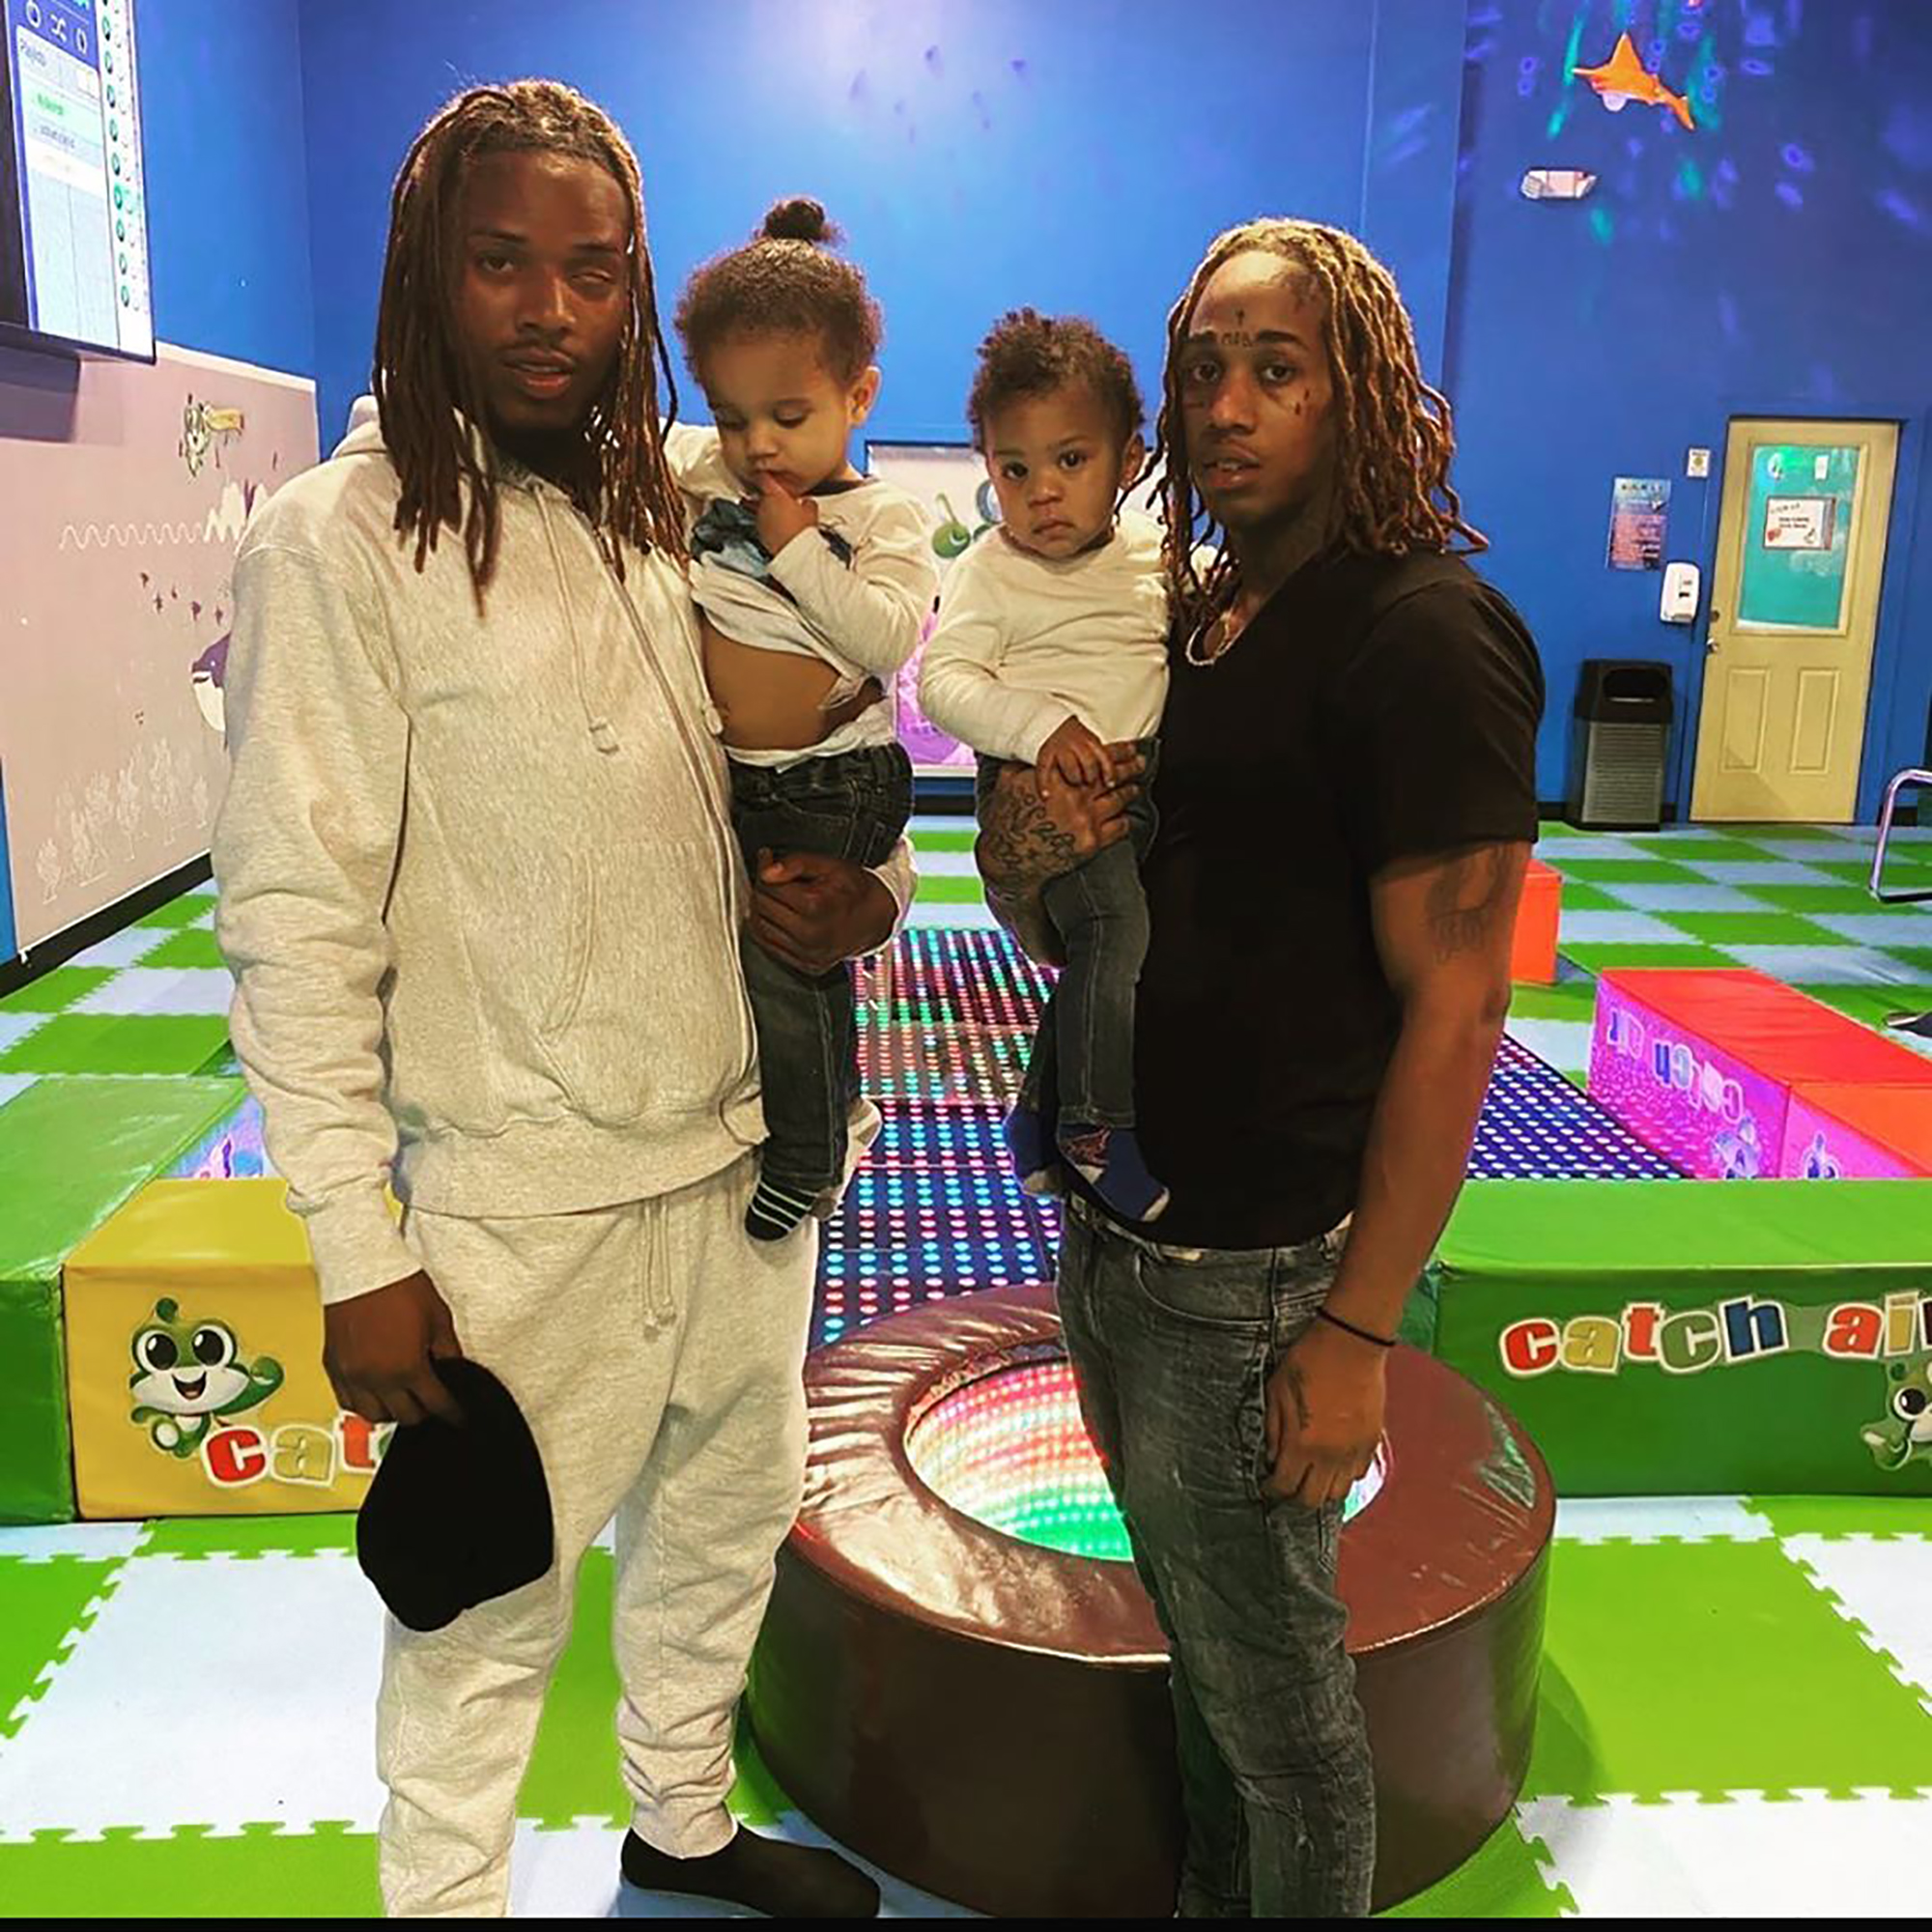 Rapper Fetty Wap's brother was shot and killed in New Jersey